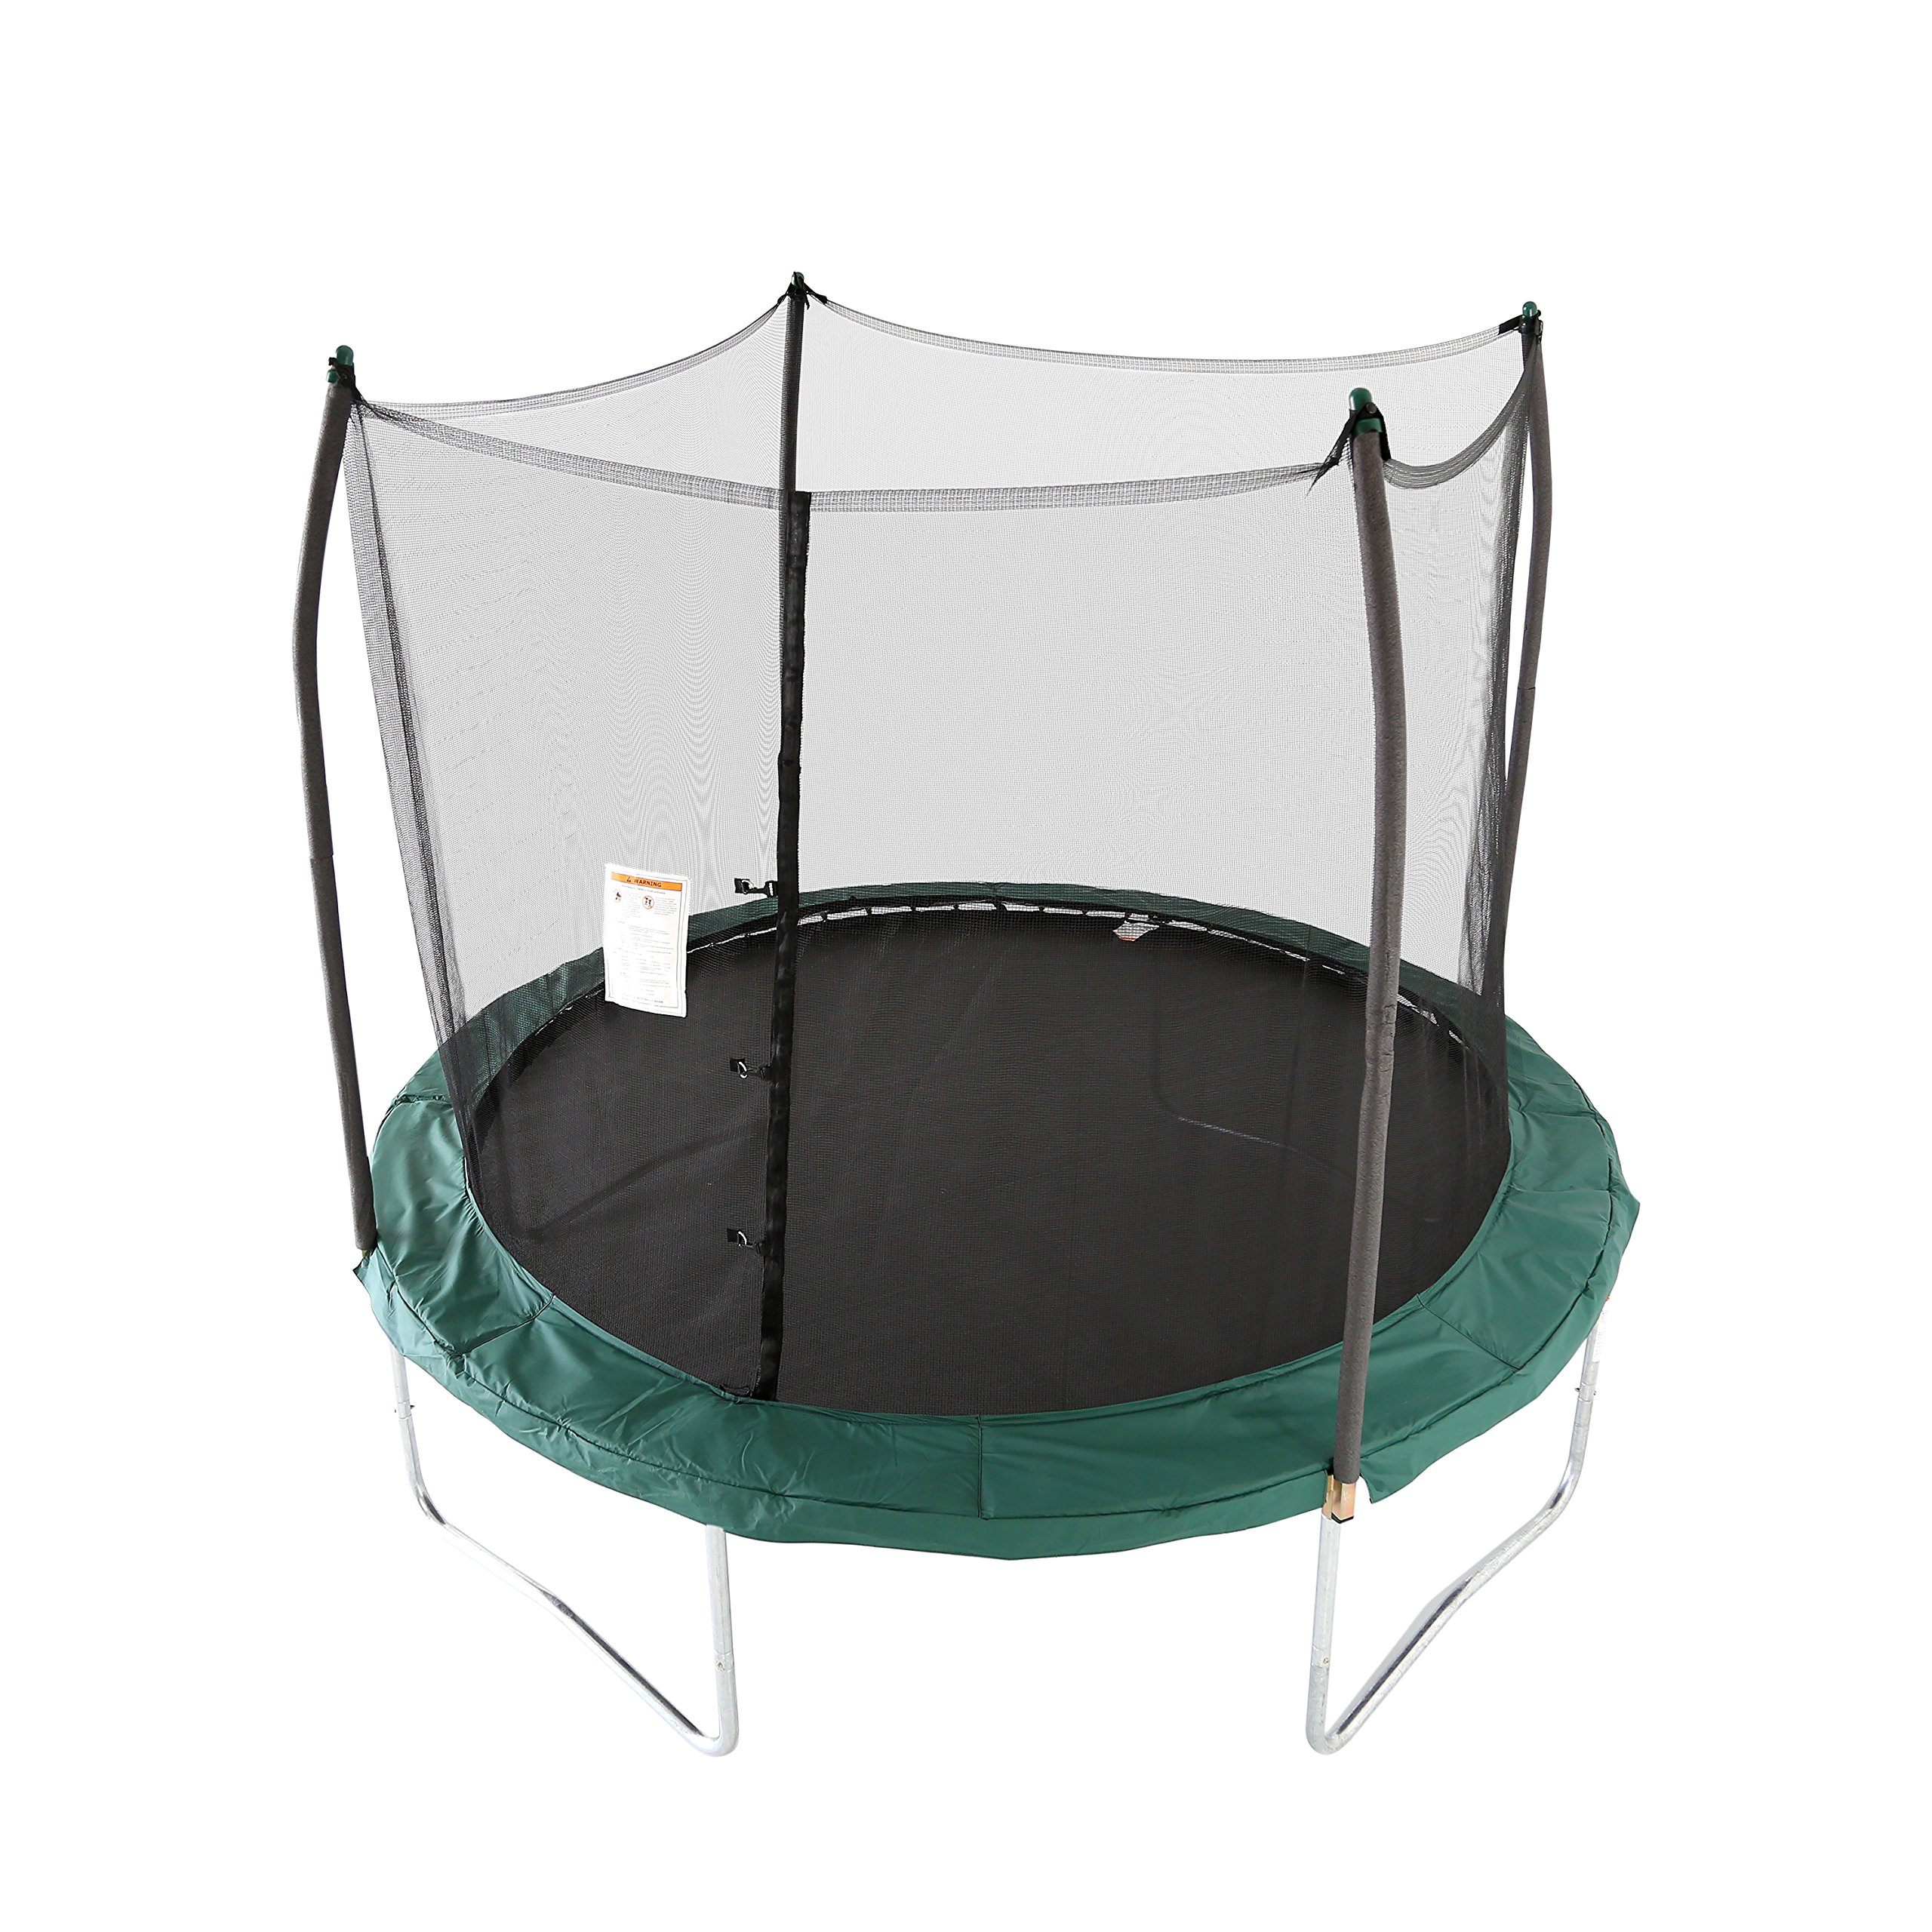 Skywalker Trampolines 10 -Foot Round Trampoline and Enclosure with spring, Green